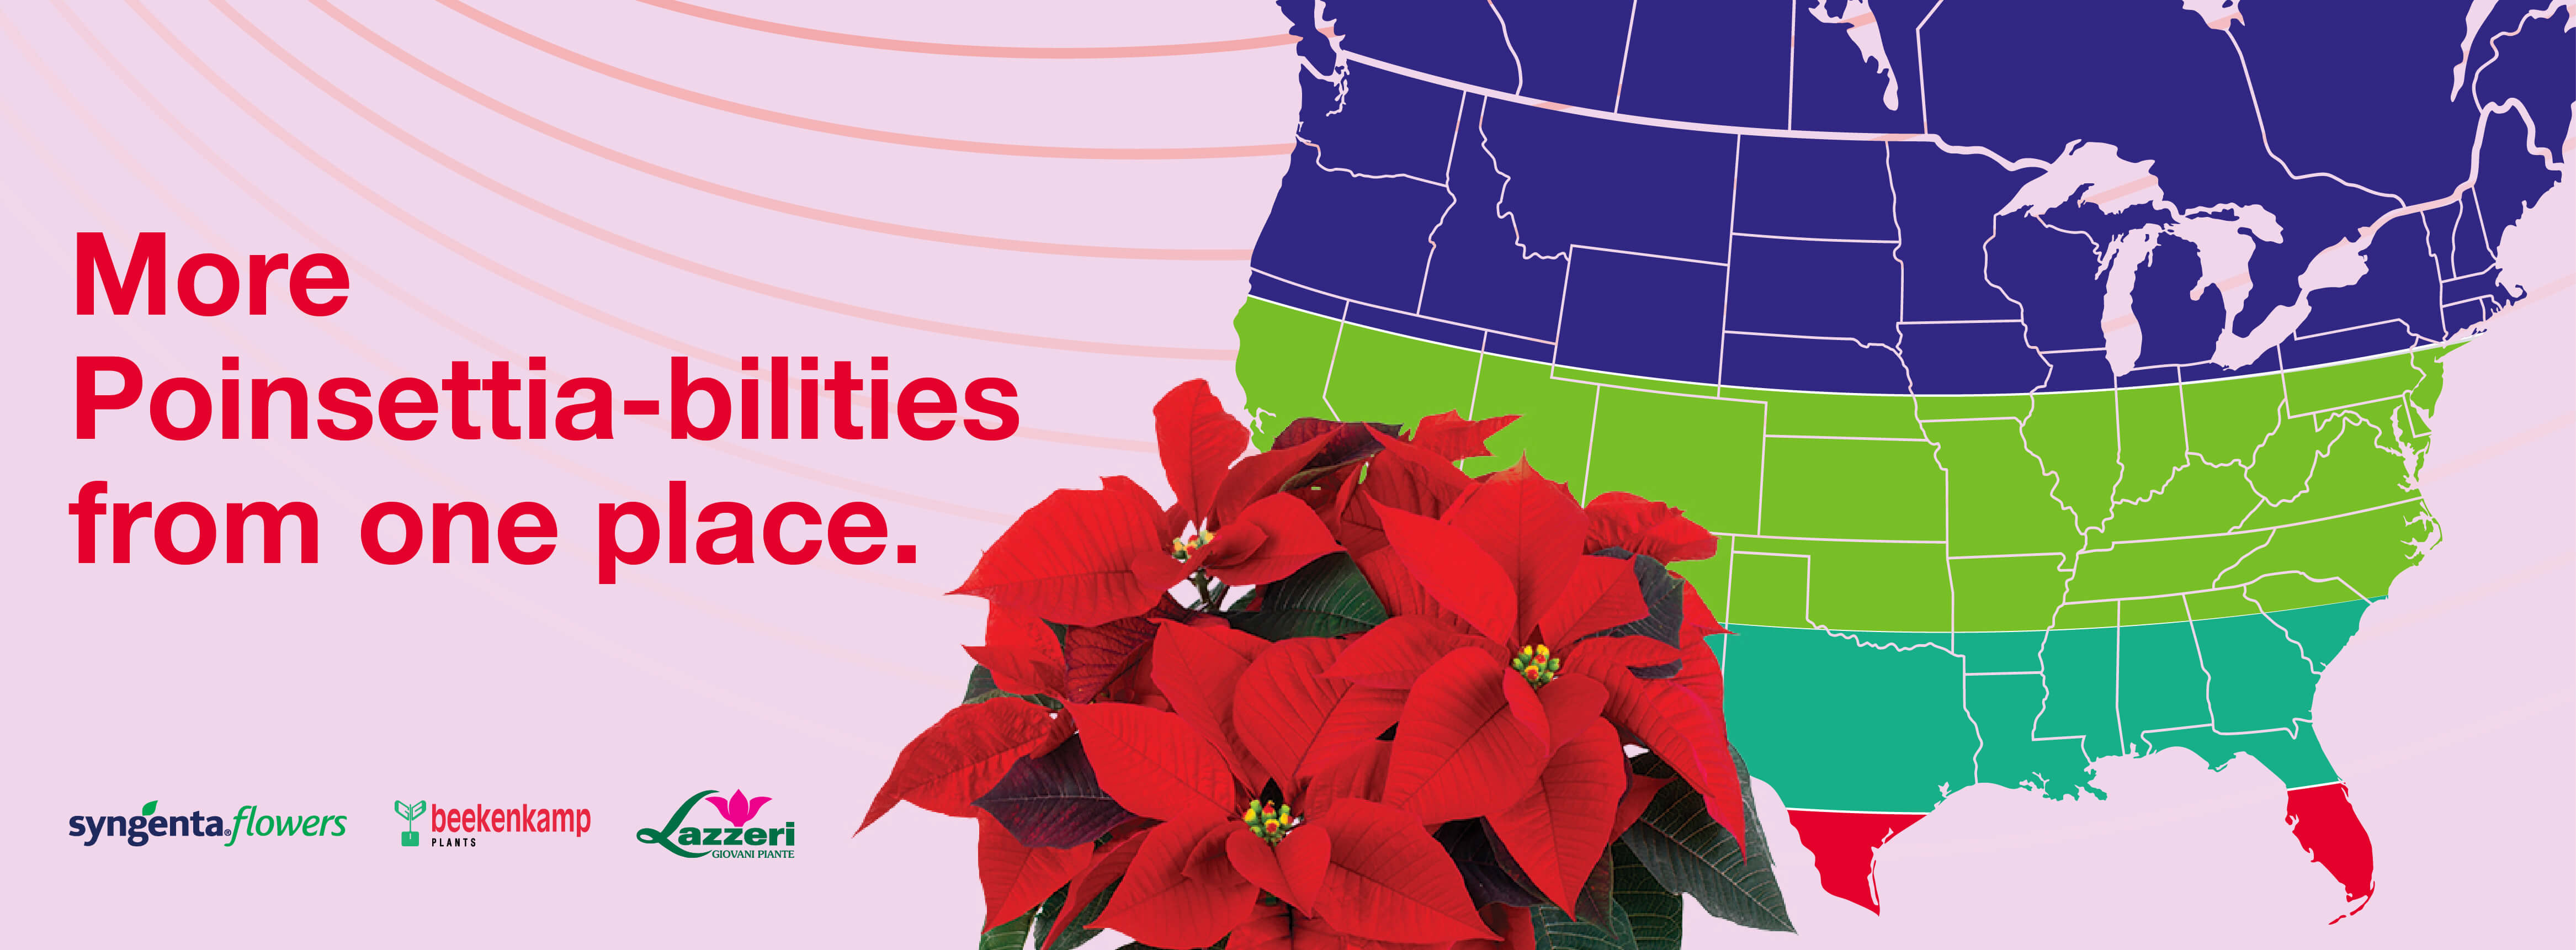 More Poinsettia-bilities from One Place | Syngenta Flowers, Beekenkamp, Lazzeri